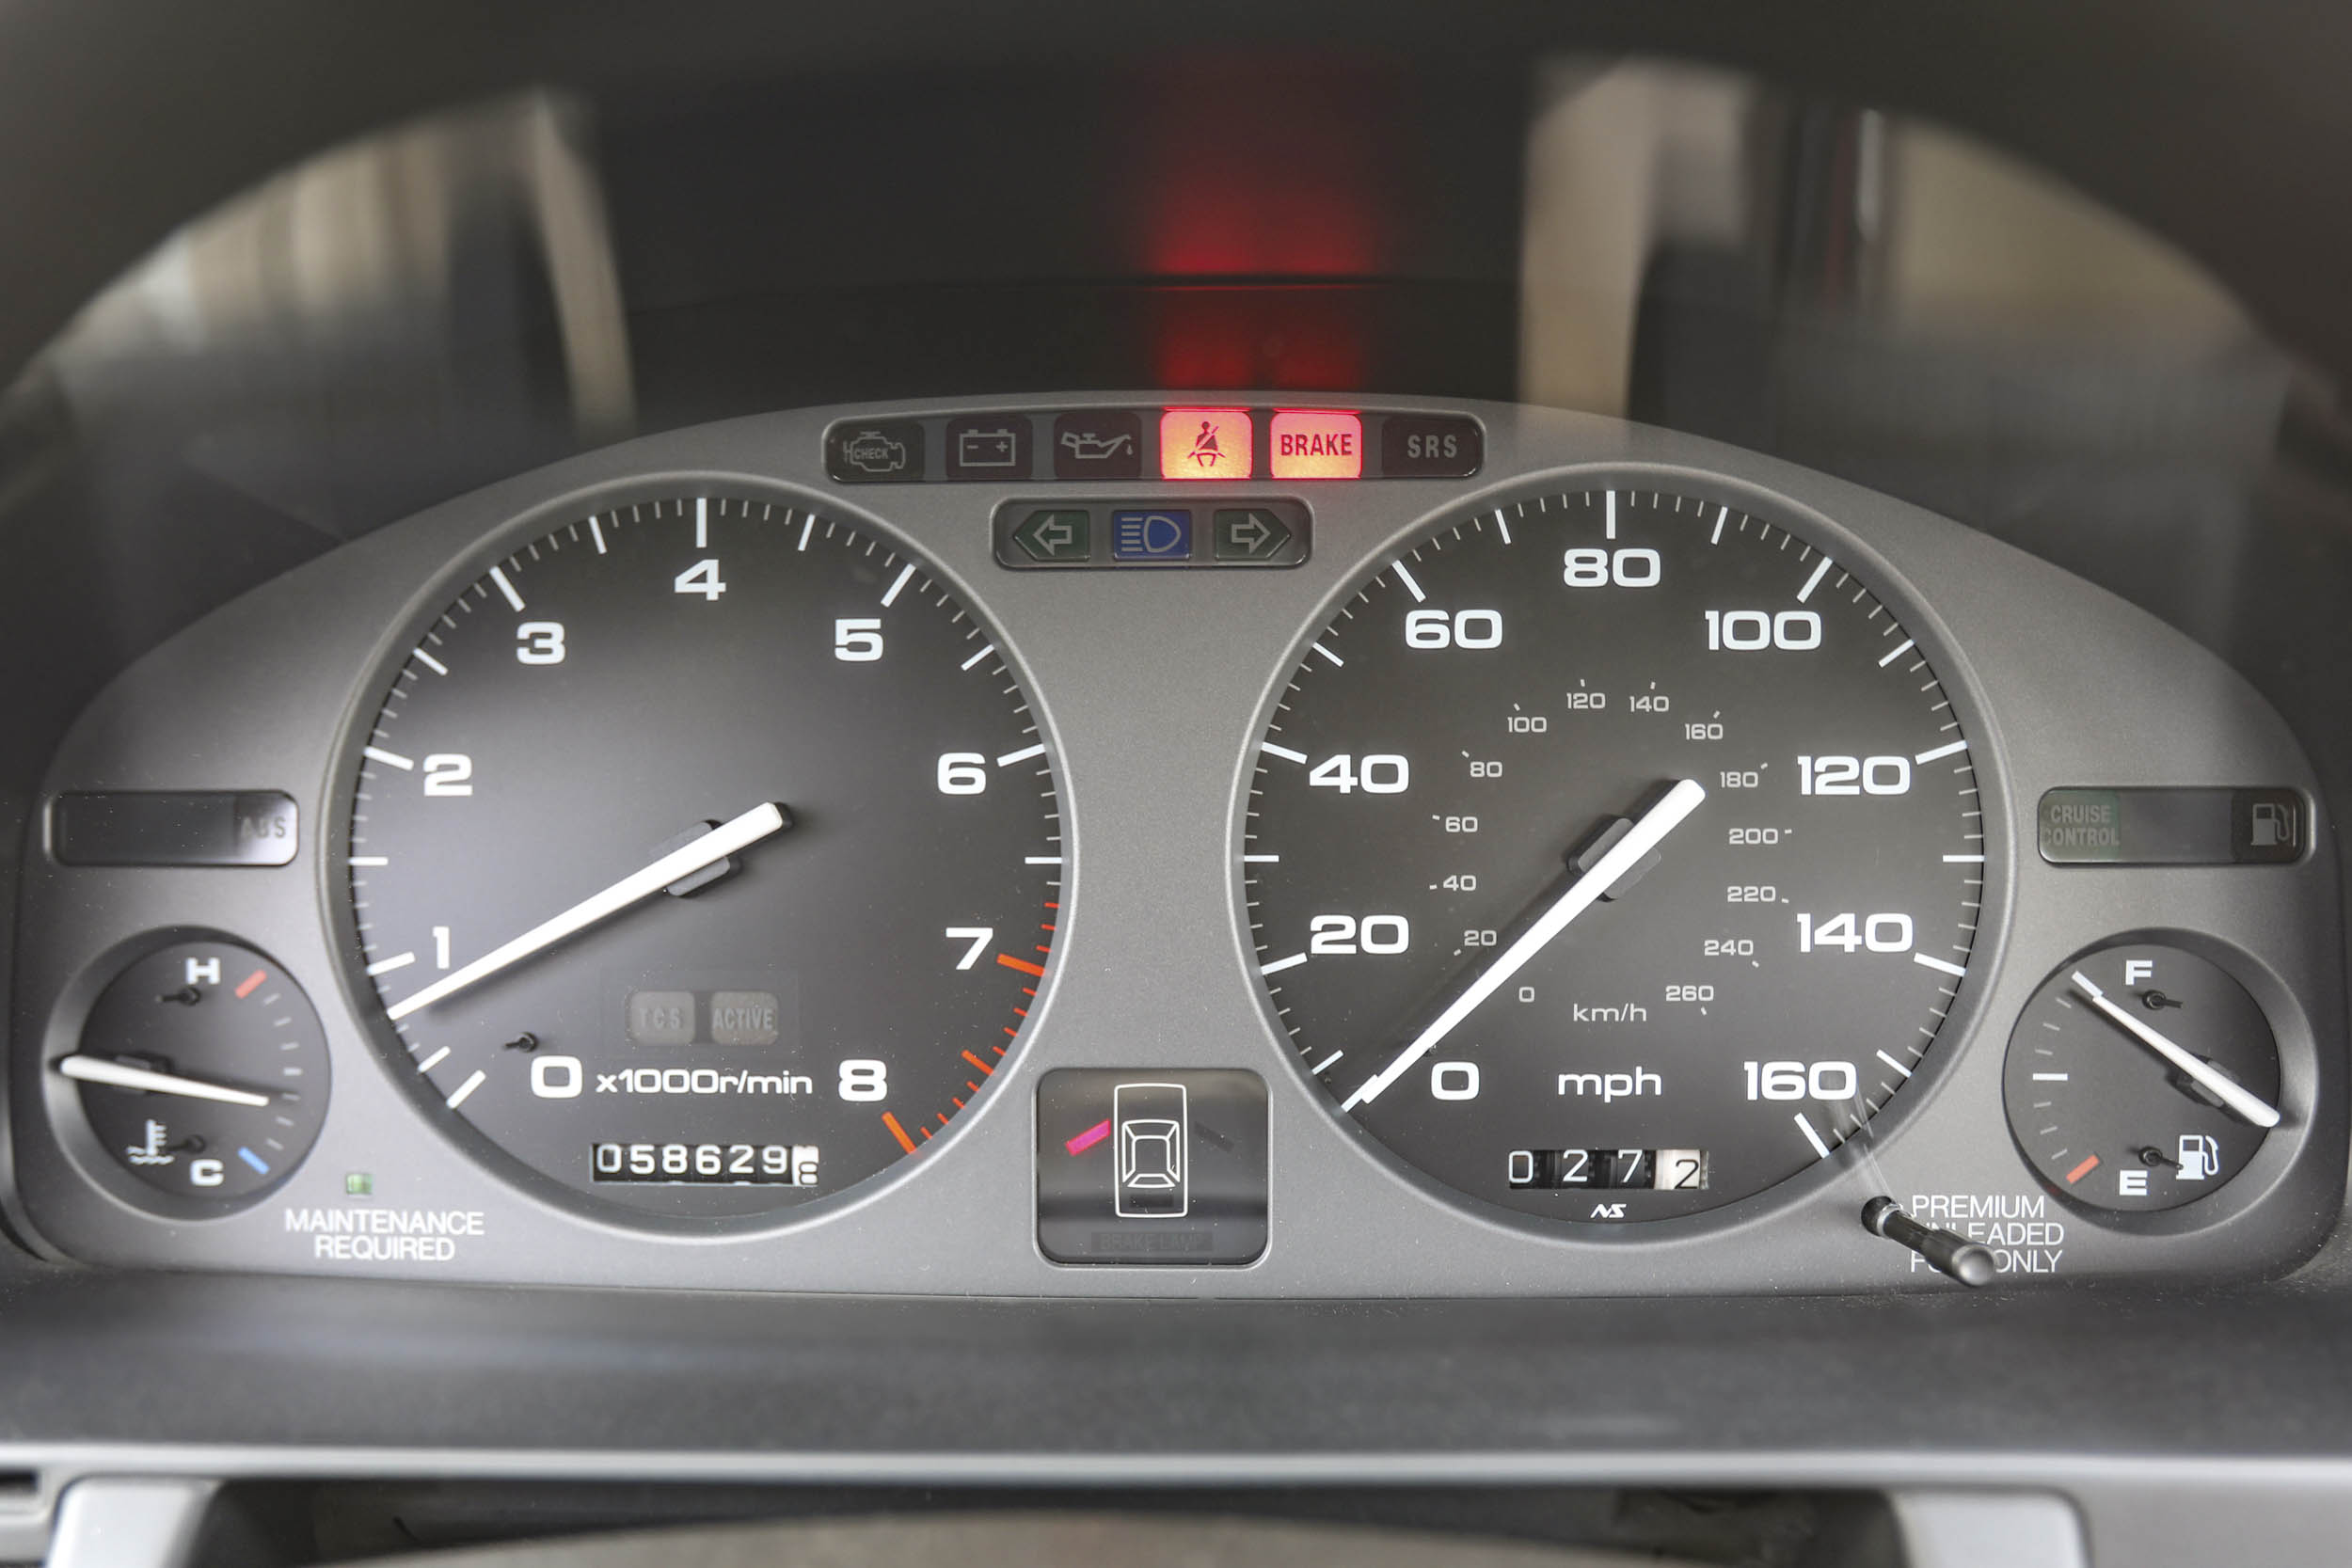 1994 Acura Legend Coupe LS gauge cluster